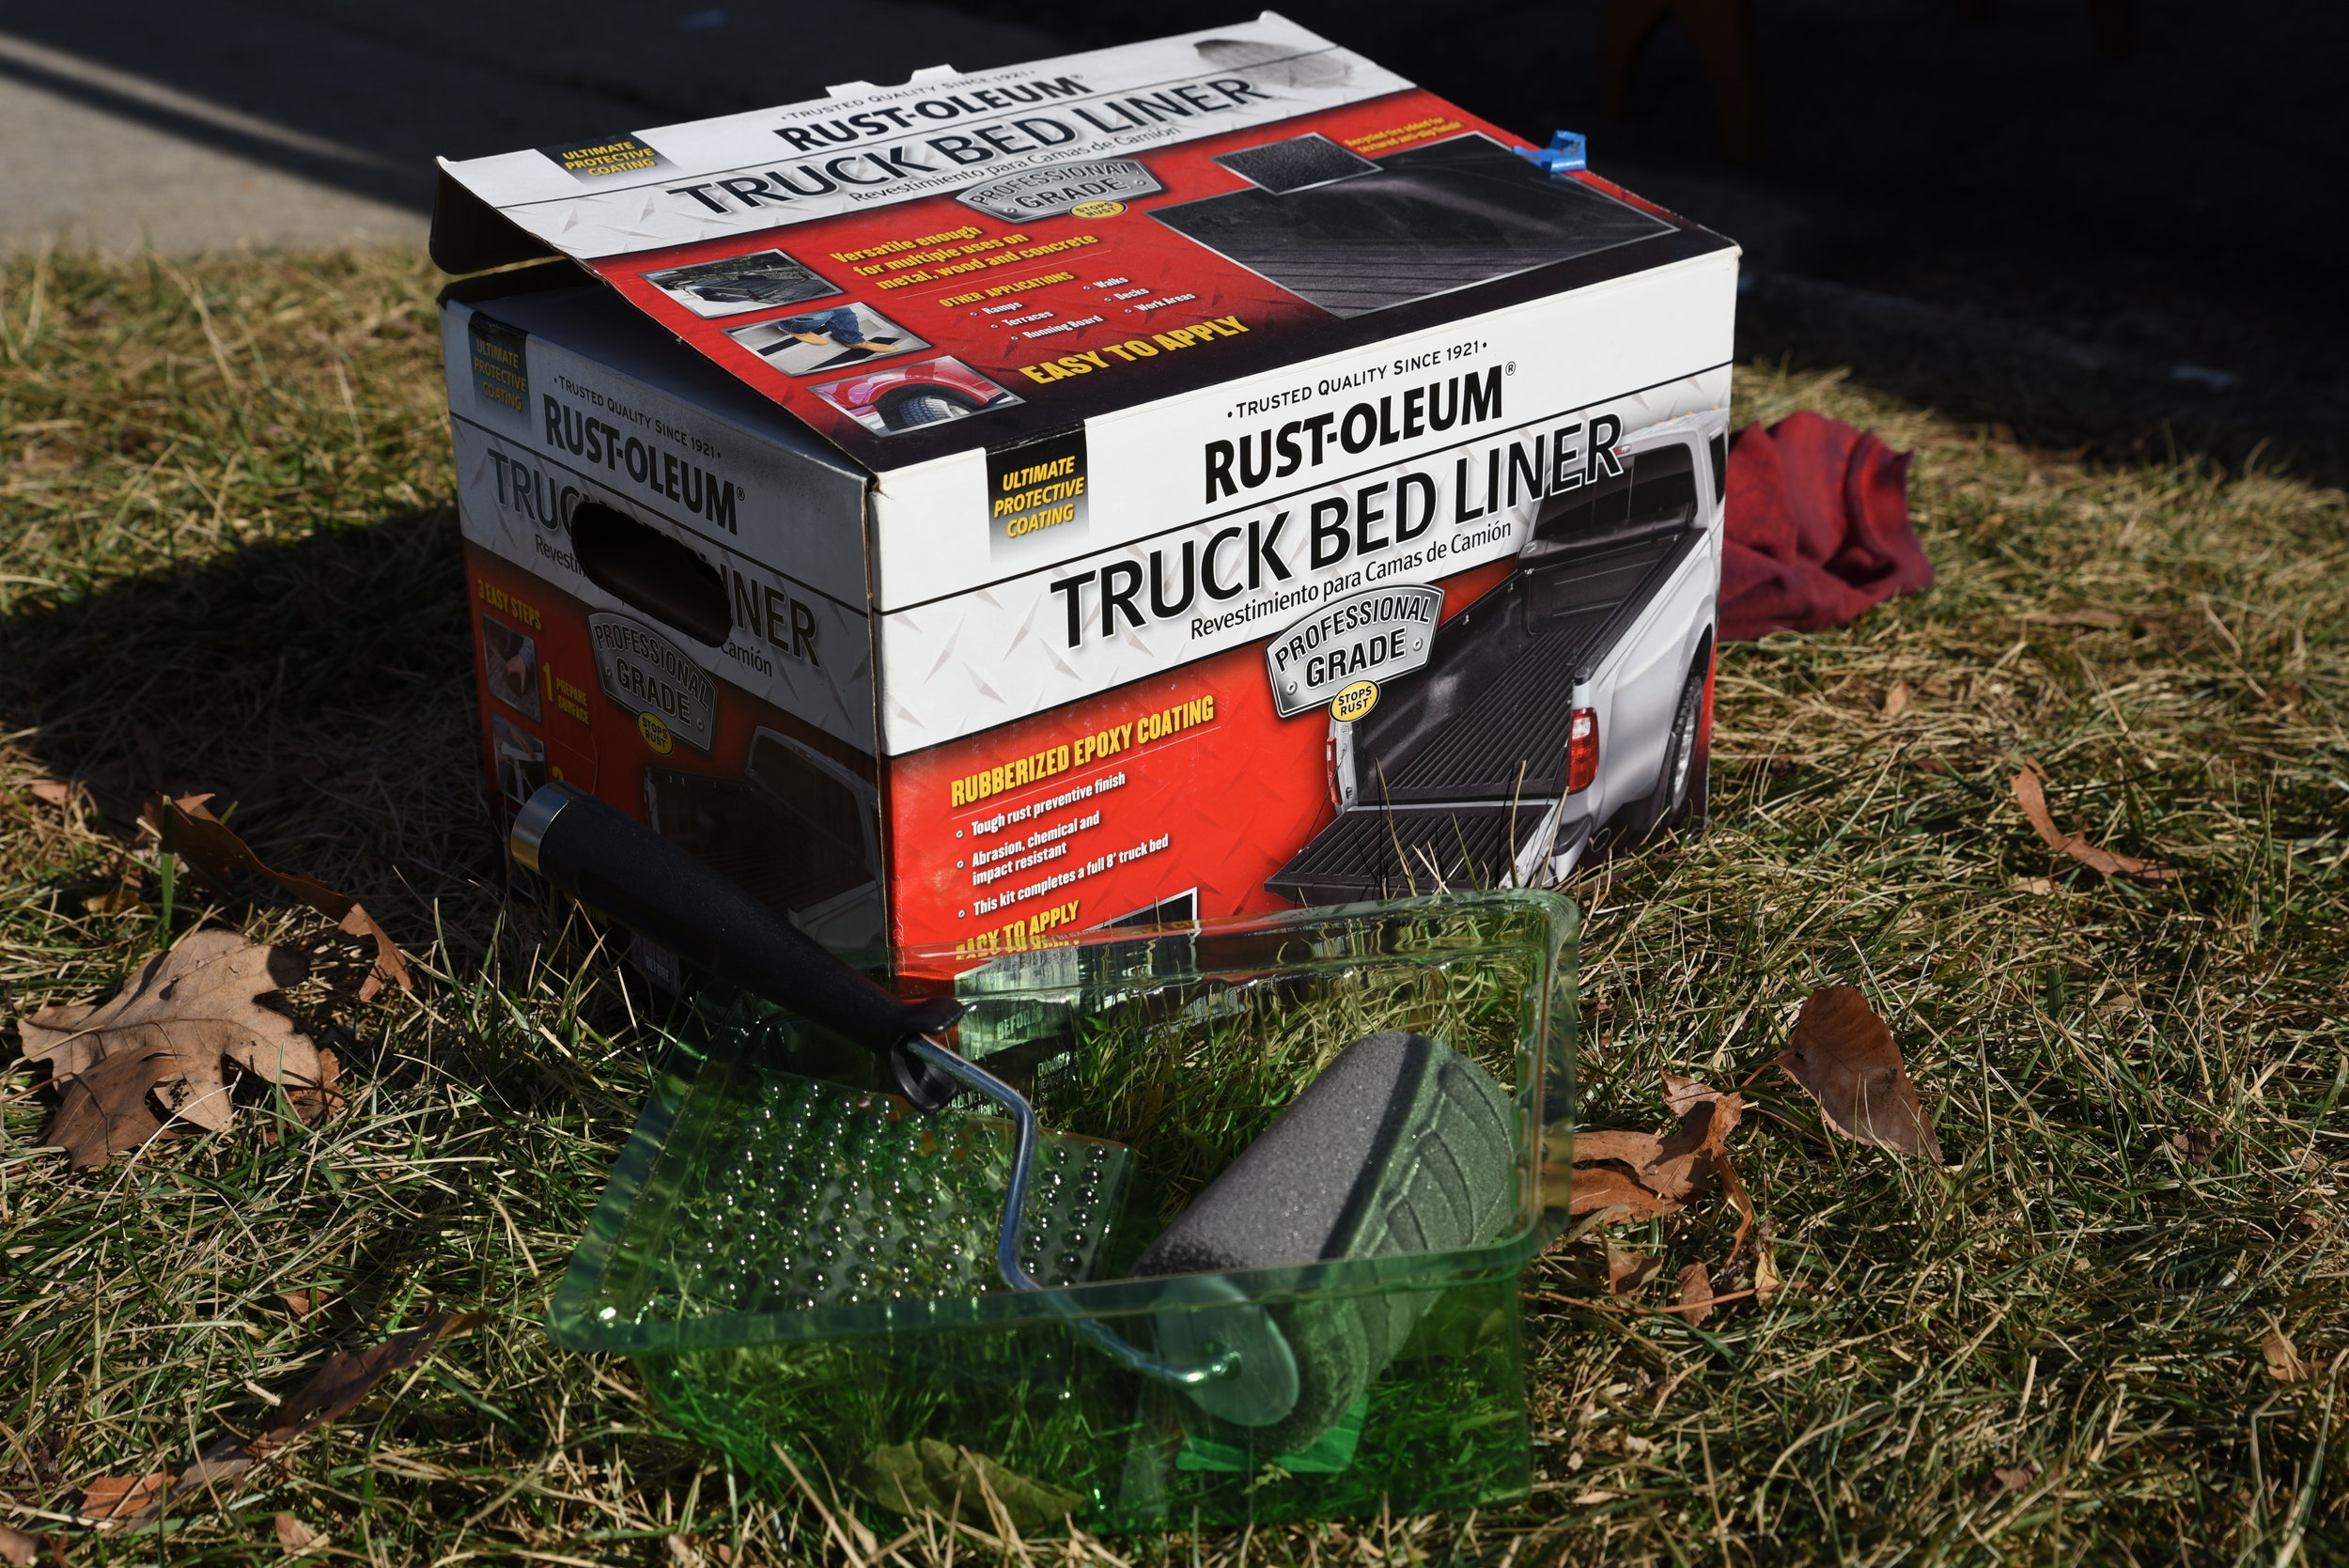 This two-part truck bed liner has held up really well over time. We haven't had any chipping or flaking.